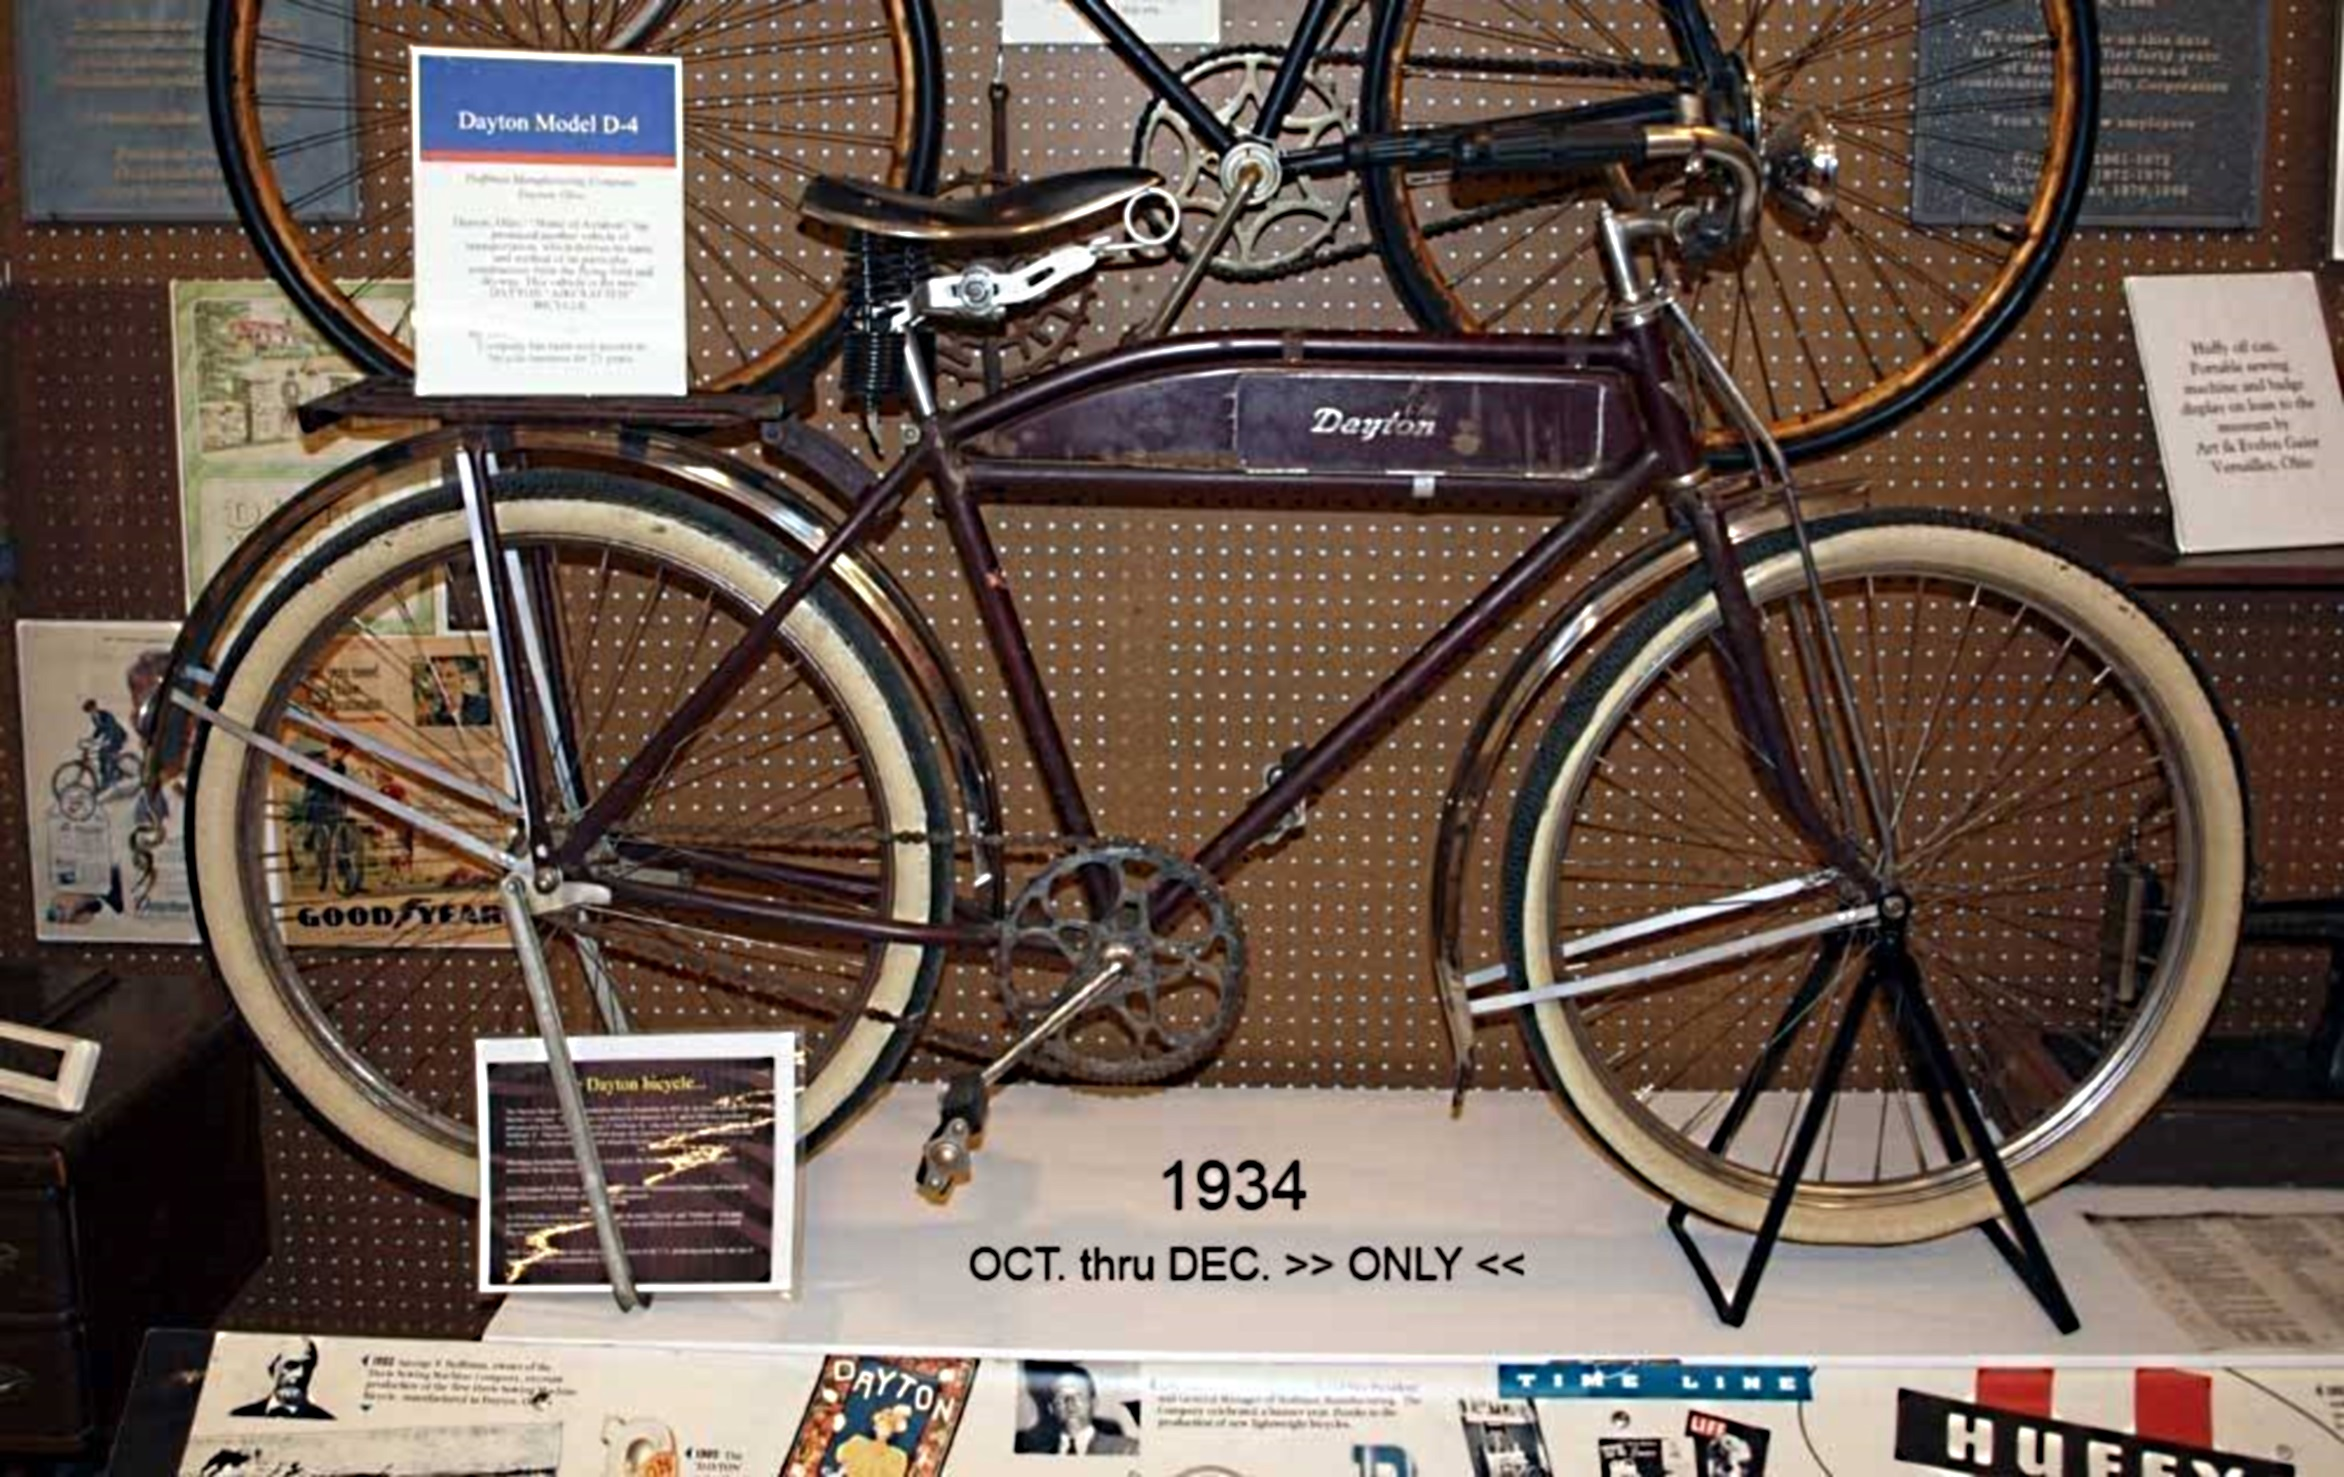 1934 Huffman (Dayton) Motorbike Model D-4 (Courtesy of Patric Cafaro-Bicycle Museum of America-BMA)